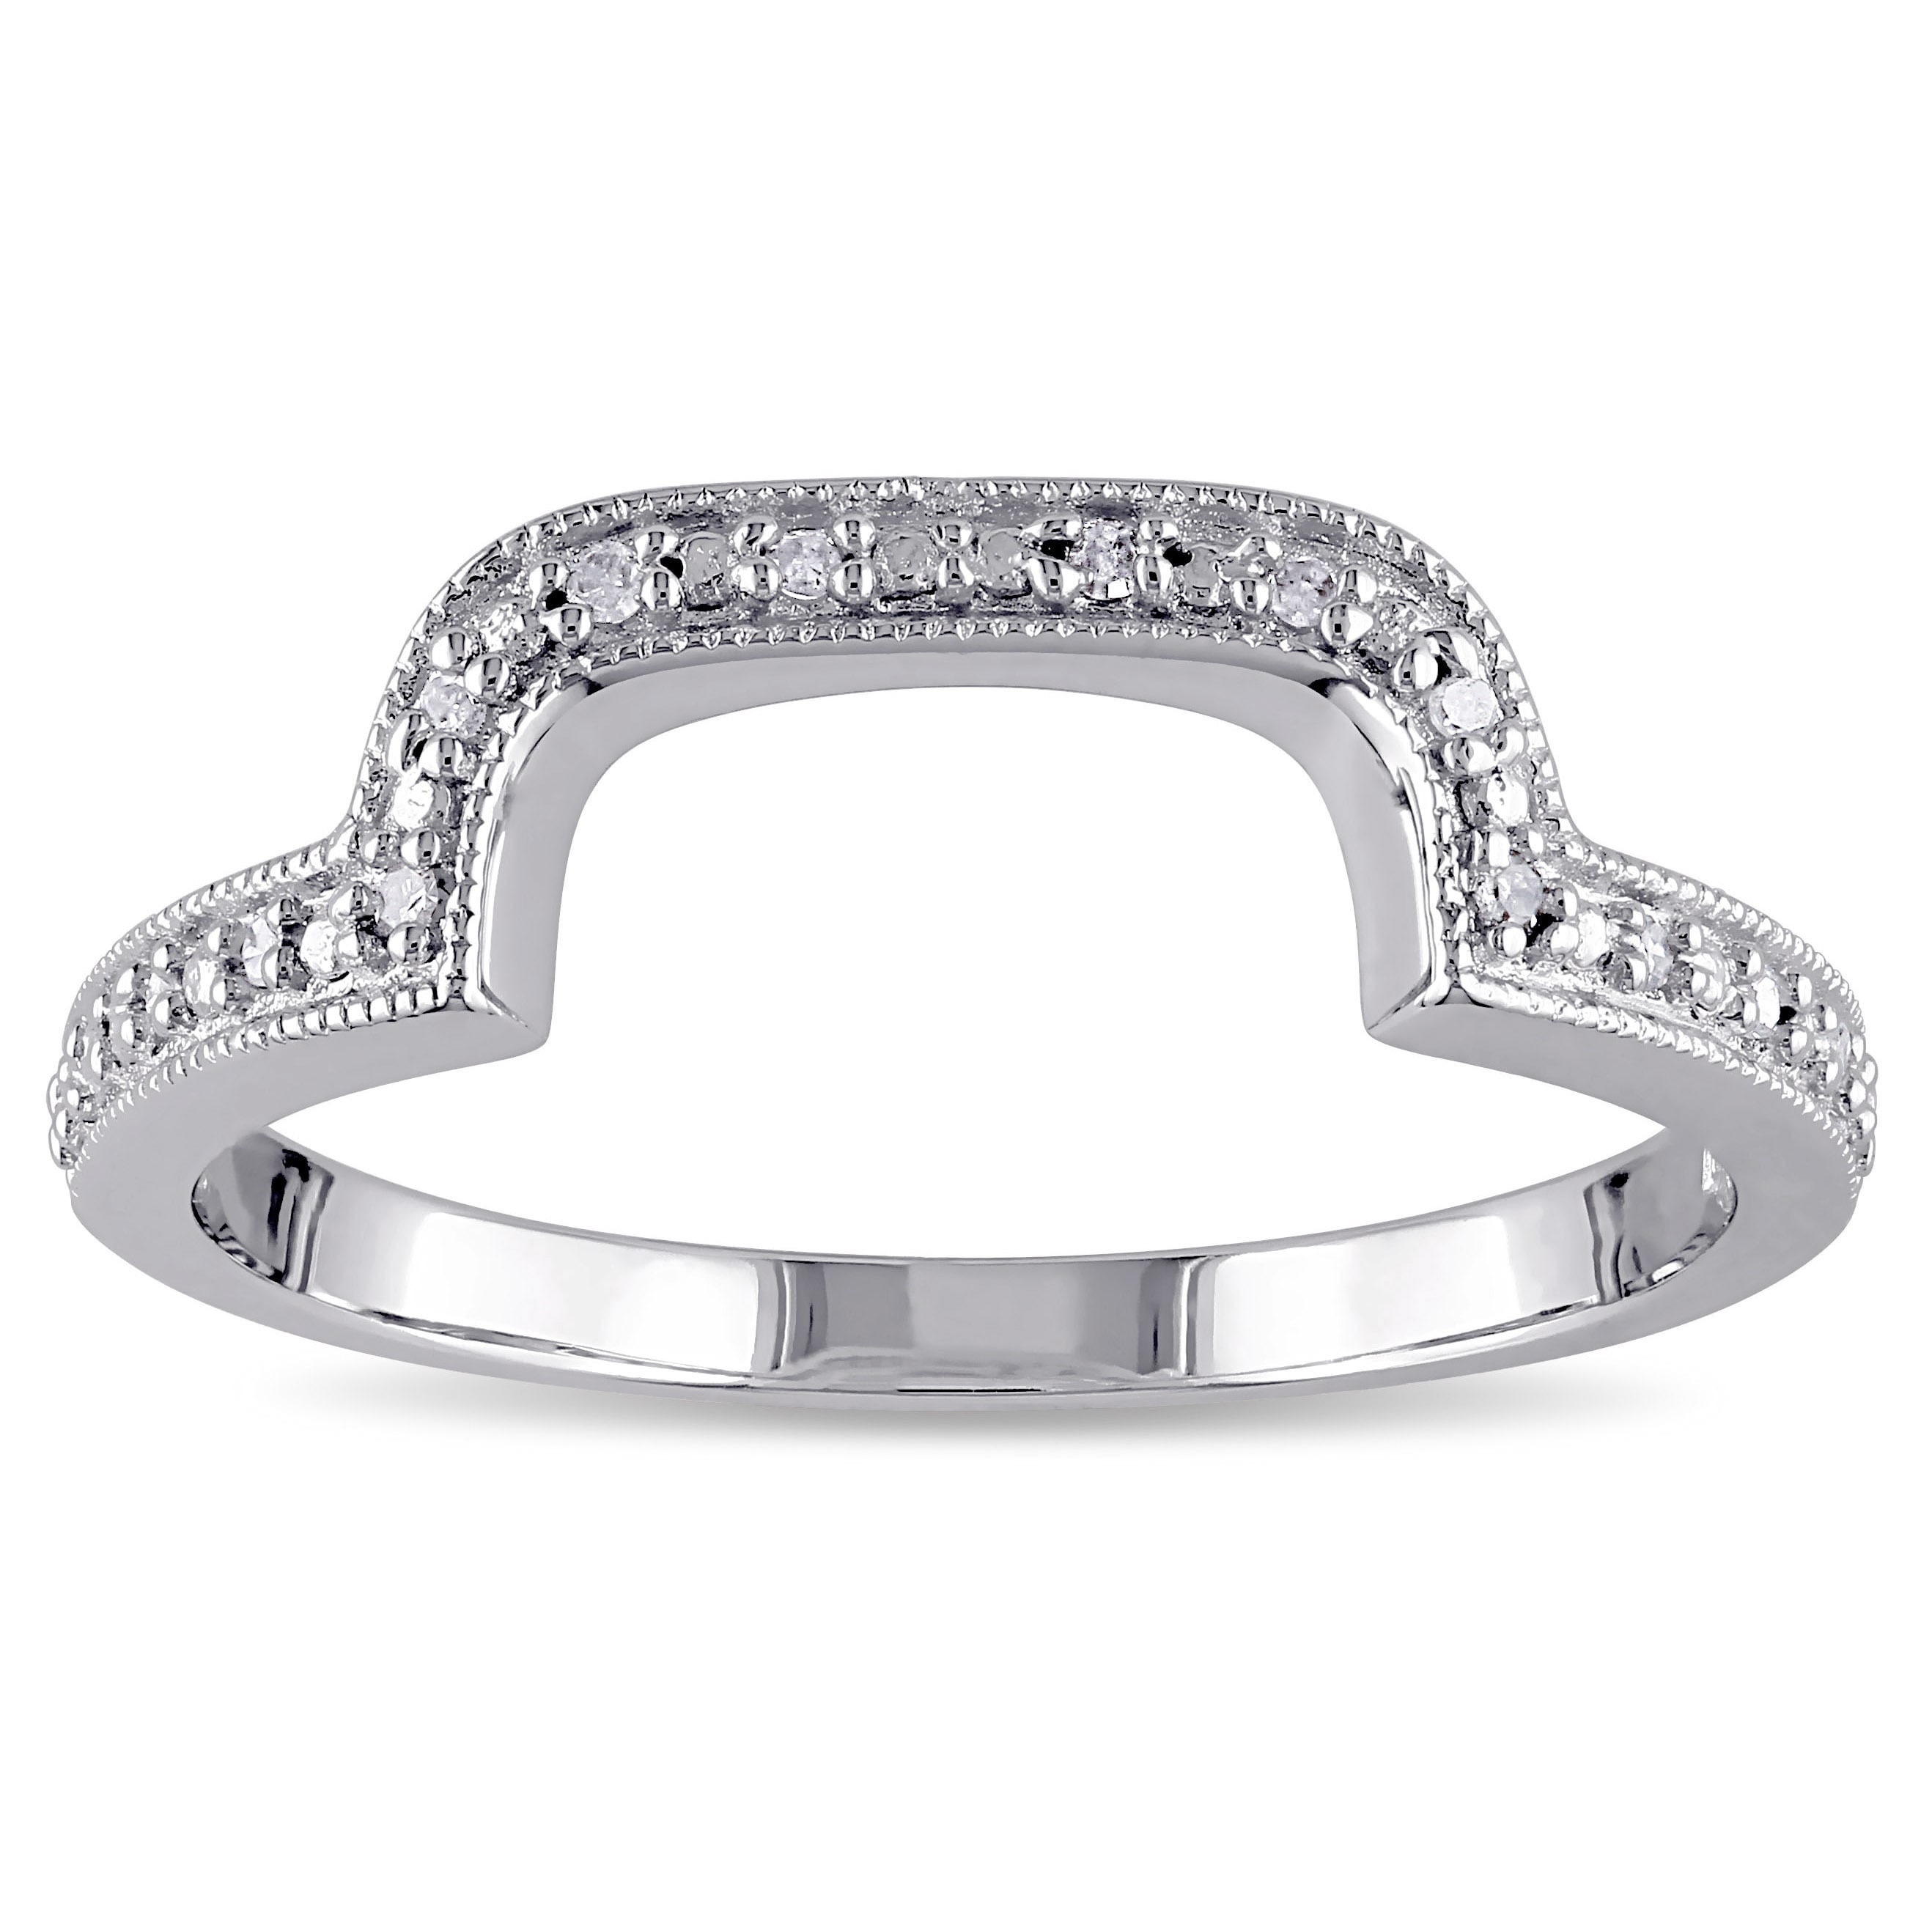 p with setting wedding band shane m bands pave contour diamond co